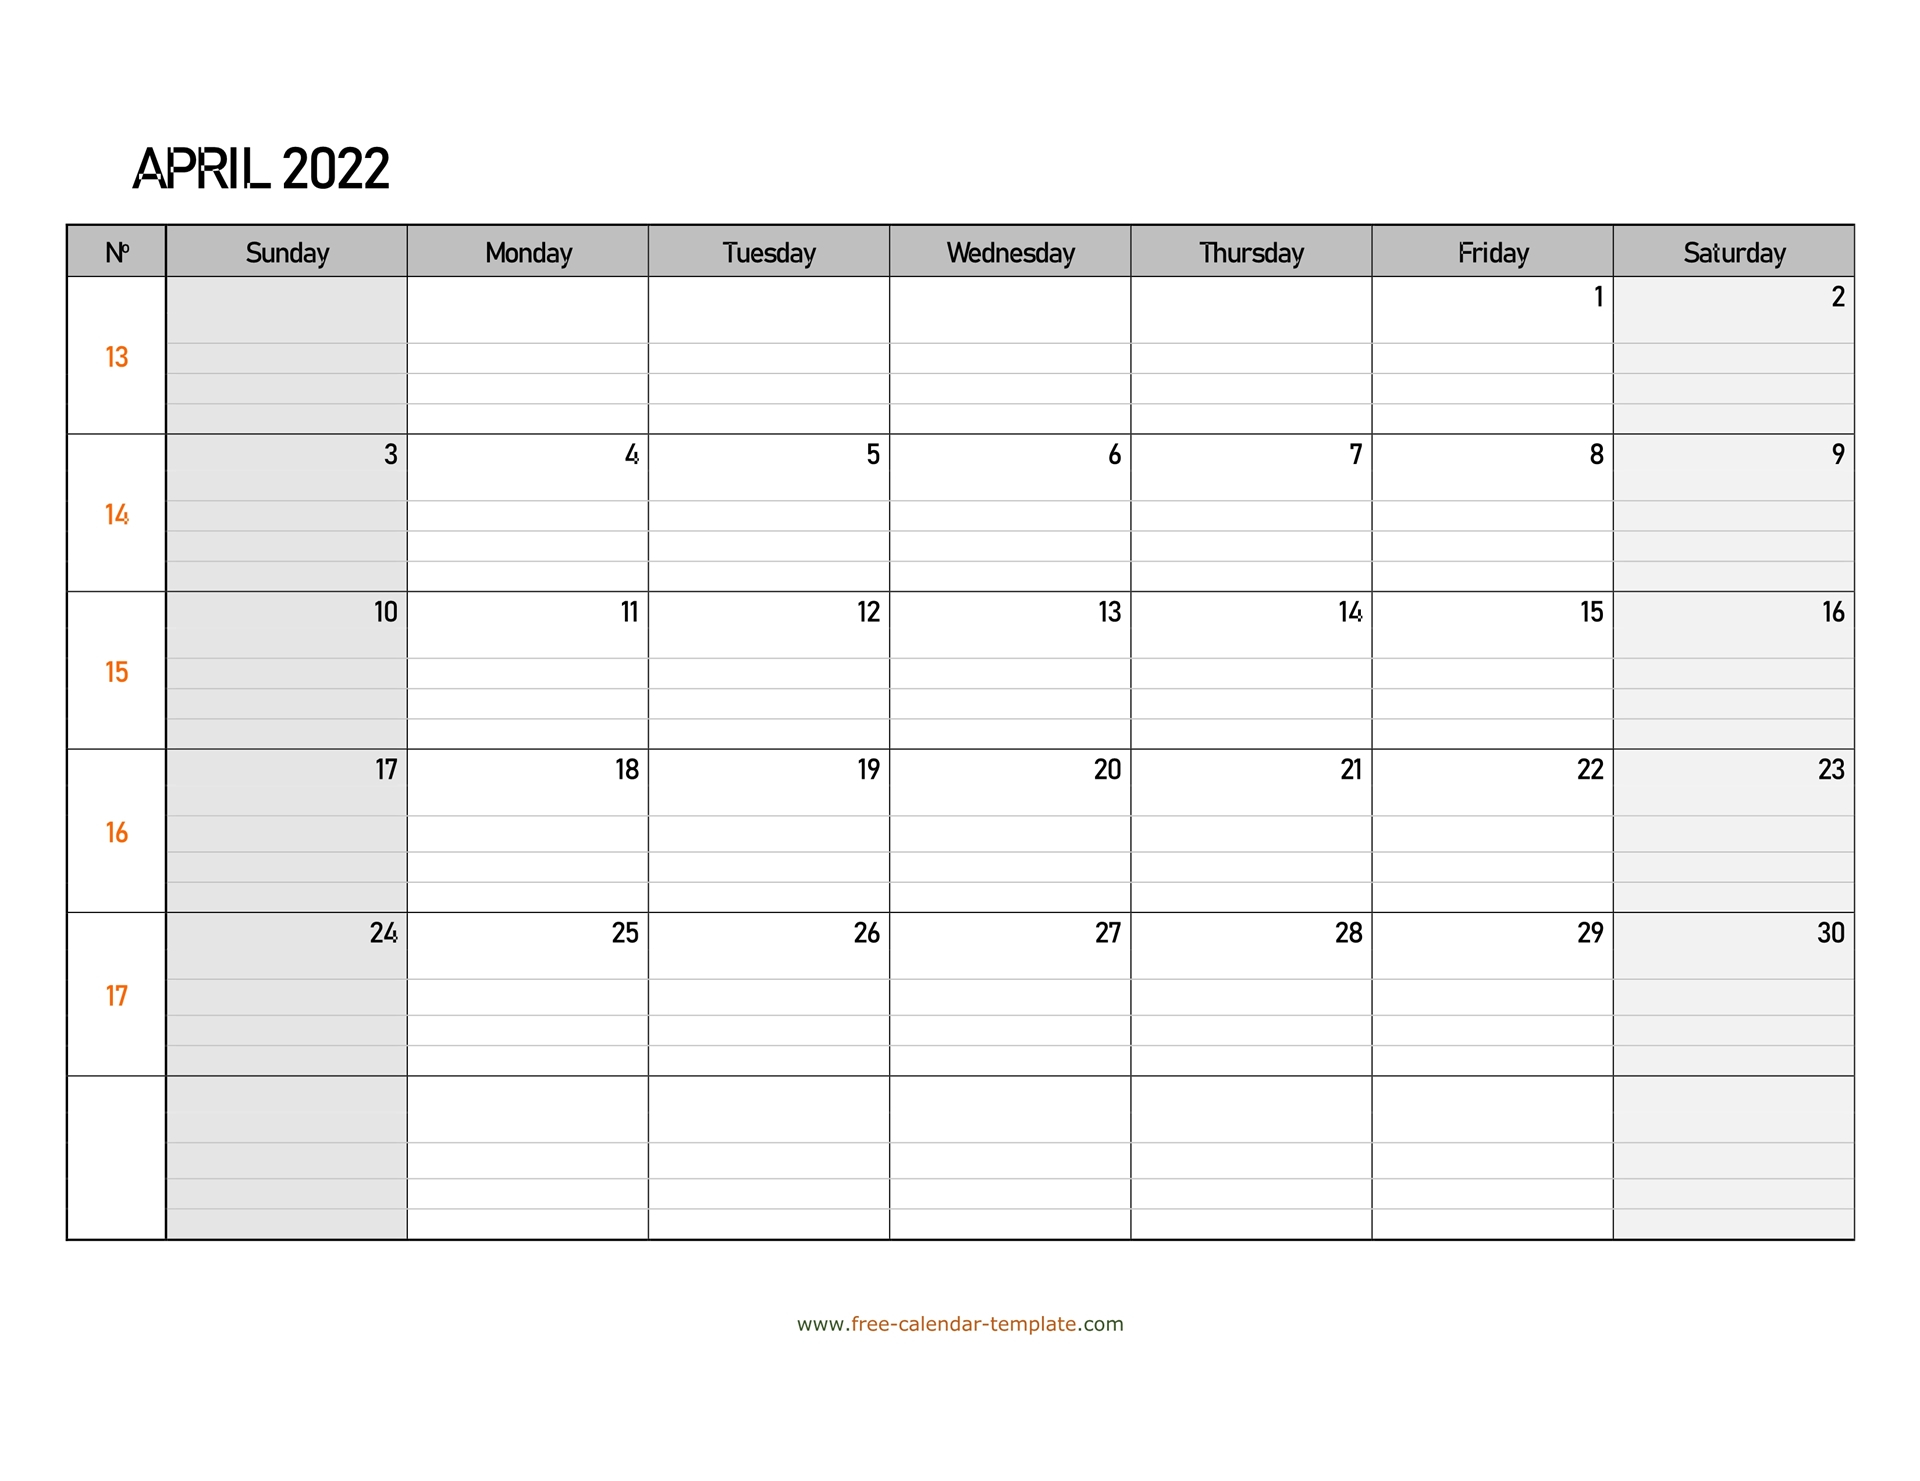 April 2022 Calendar Free Printable With Grid Lines Intended For March April May 2022 Calendar Print